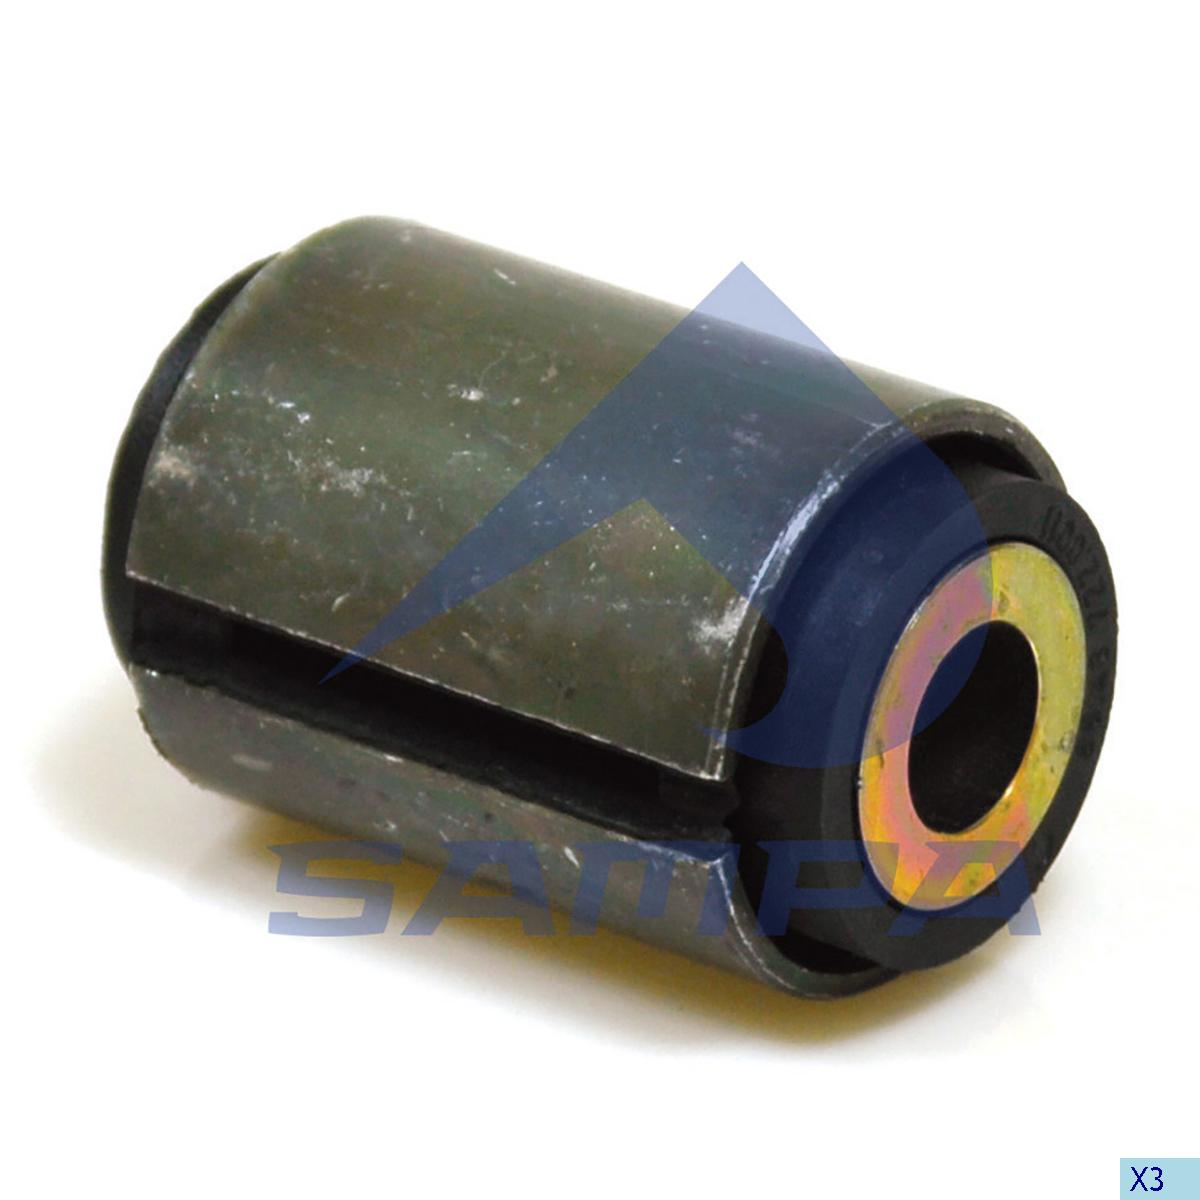 Rubber Bushing, Spring, Man, Suspension